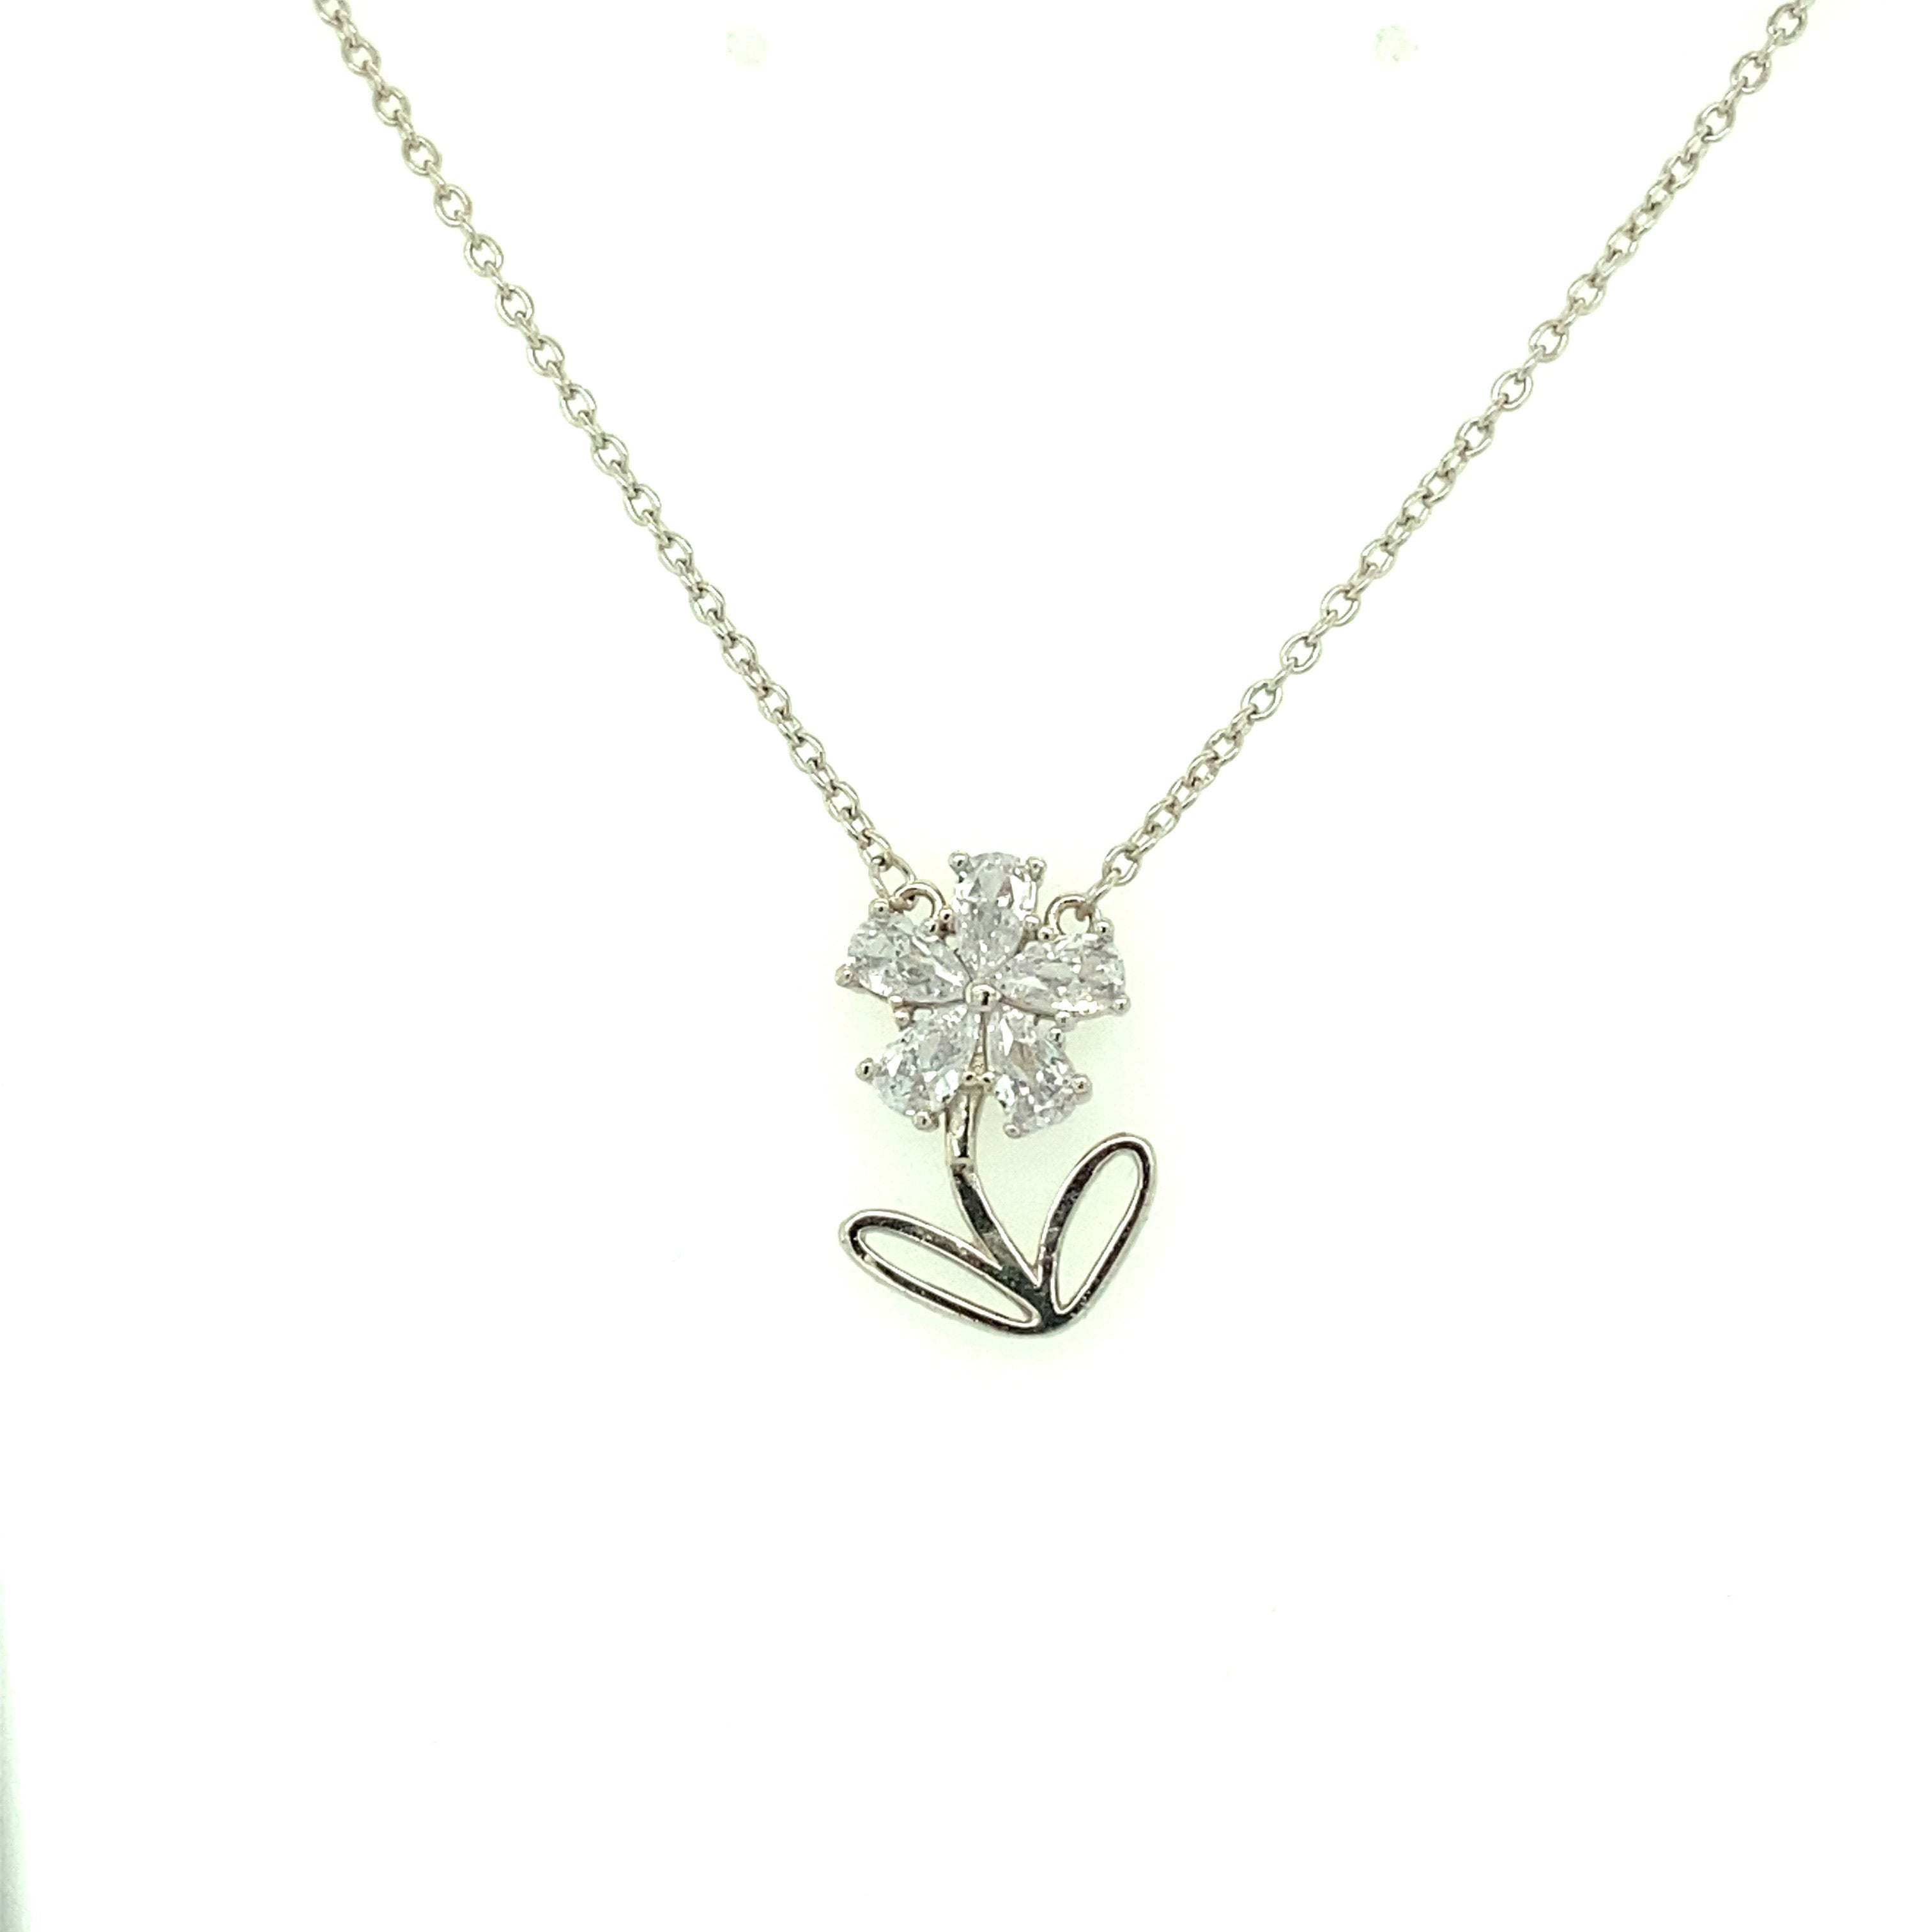 Necklace n1570 - 925 Sterling Silver